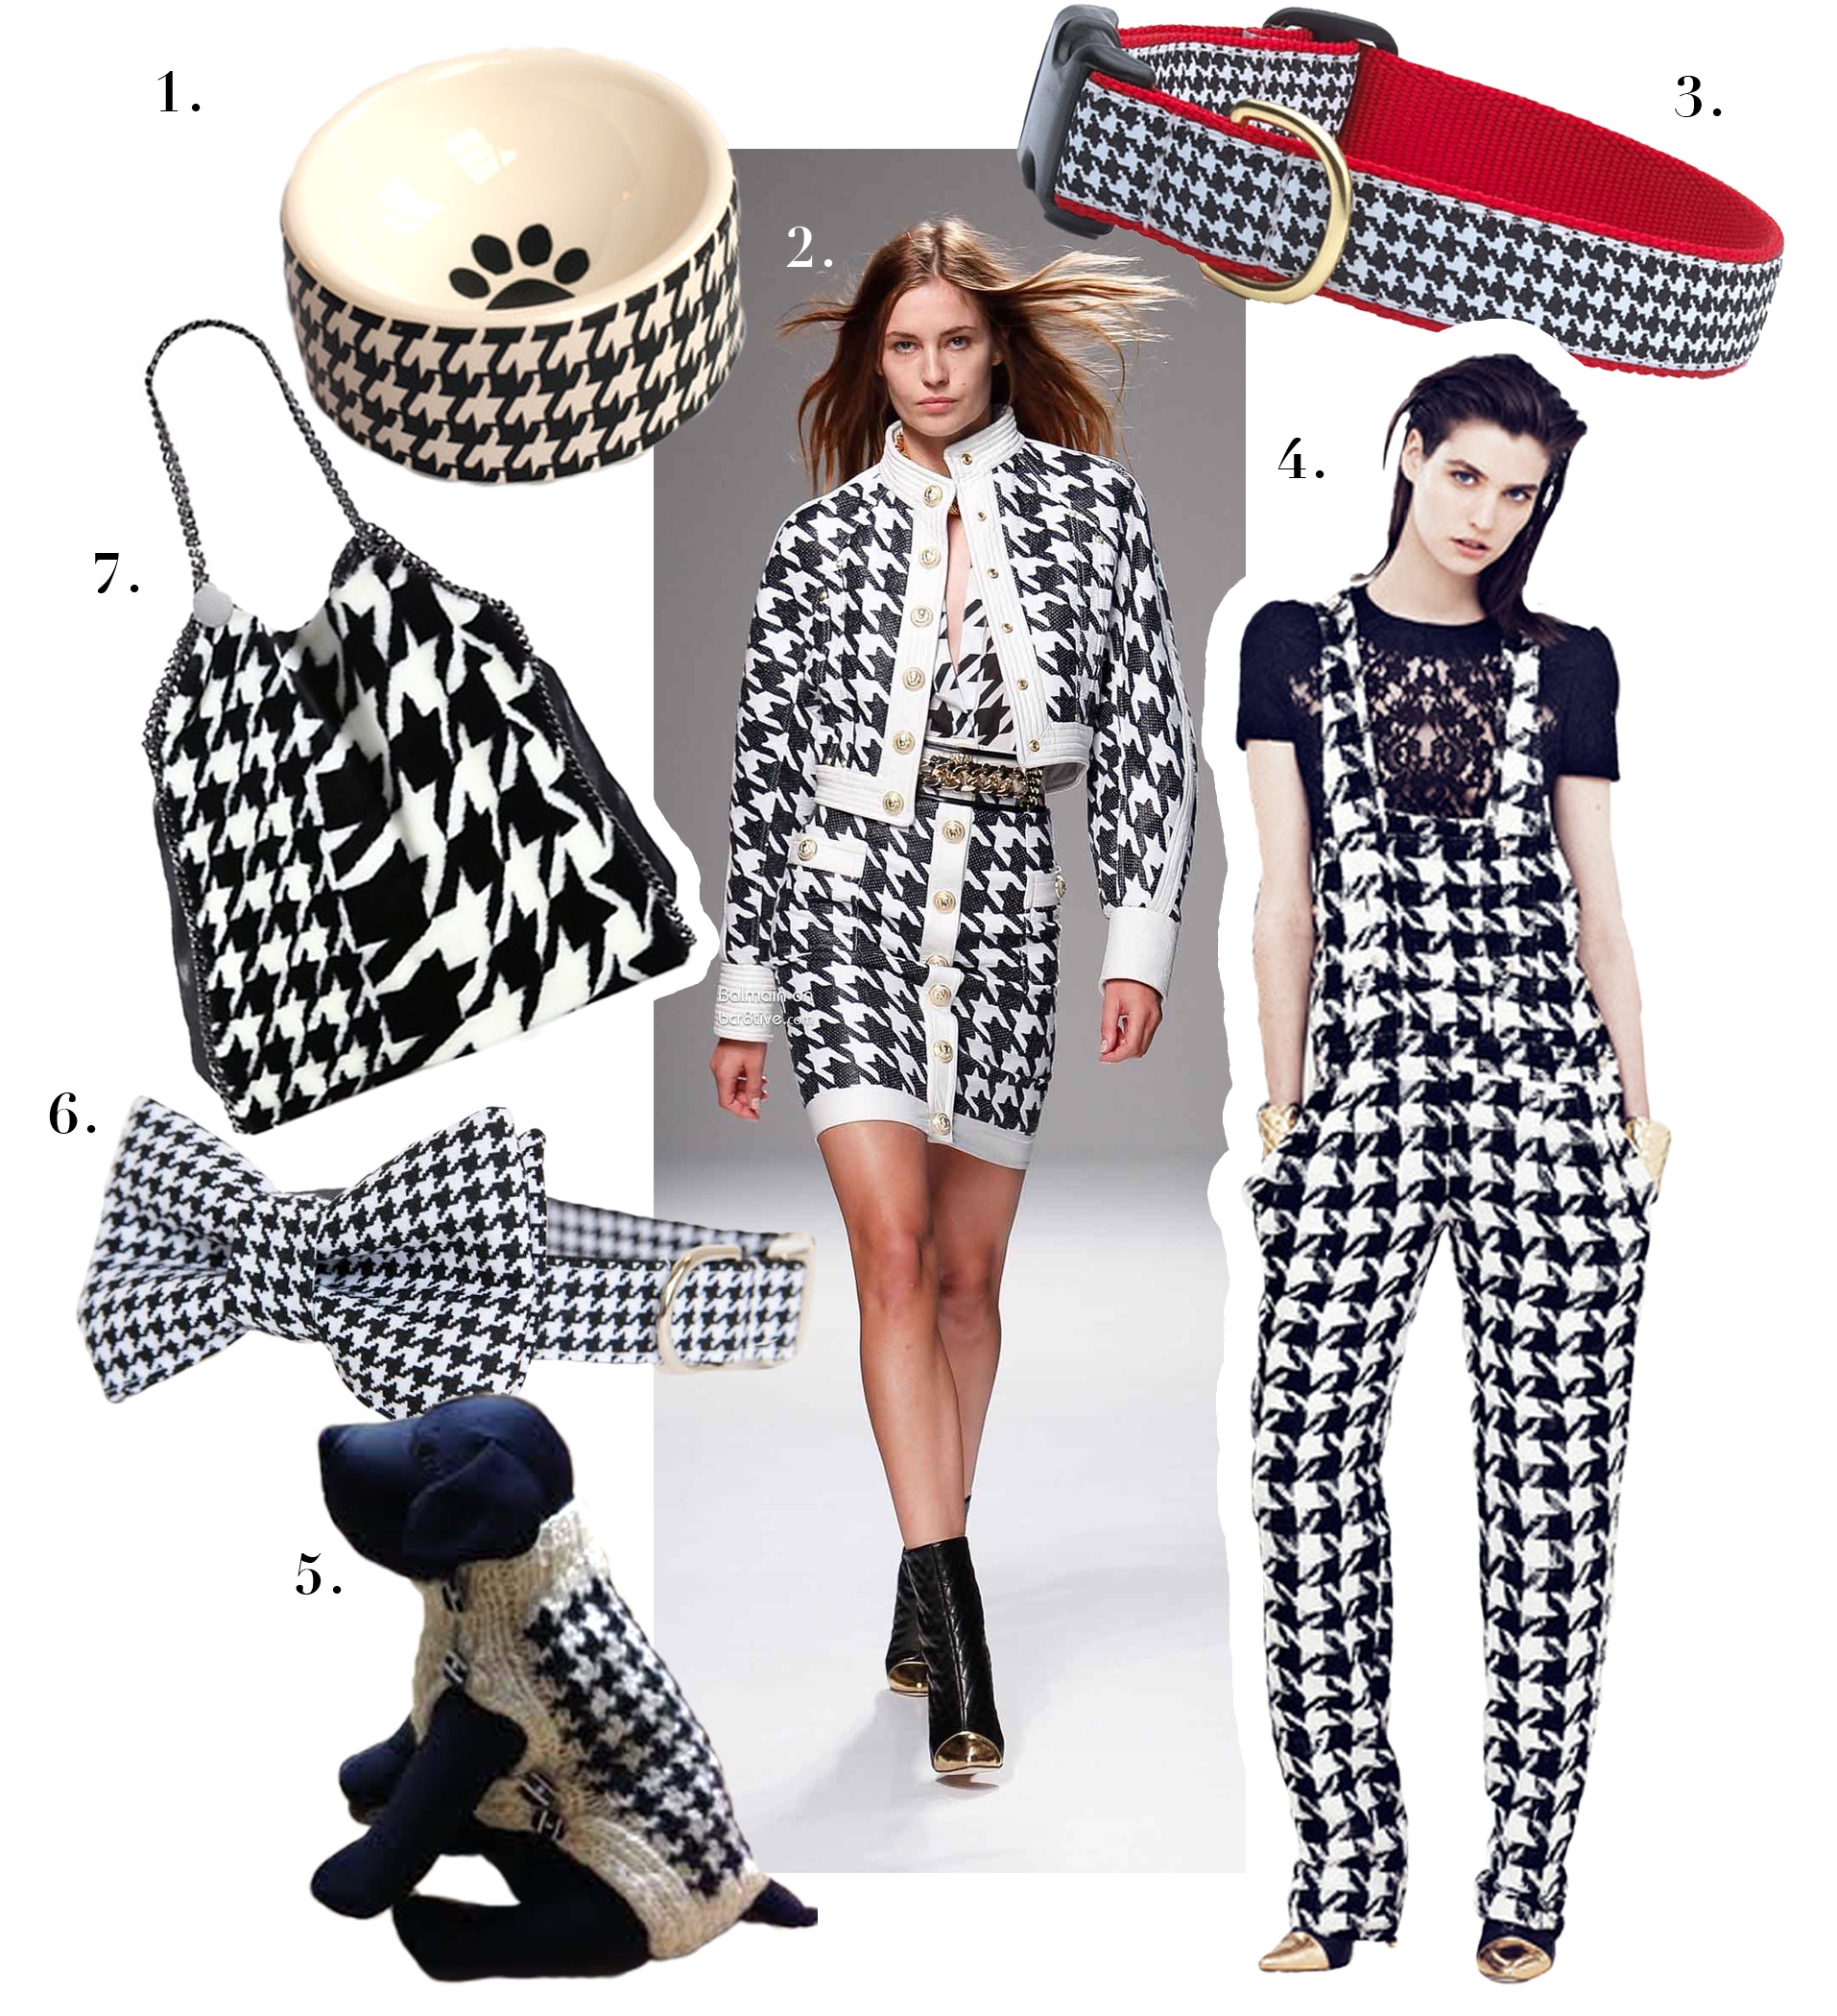 1. Doggie Couture,    Houndstooth Bowl    2.   Balmain S/S 14 Collection  3. Up Country,   C      lassic Black Houndstooth Collar         4.  Balmain Resort 14 Collection   5. Stylehounds Handknit,    Houndstooth Knitted Sweater   6. Pecan Pie Puppies,    Houndstooth Black and White Dog Bowtie Collar    7. Stella McCartney,   Falabella Jacquard Big Tote